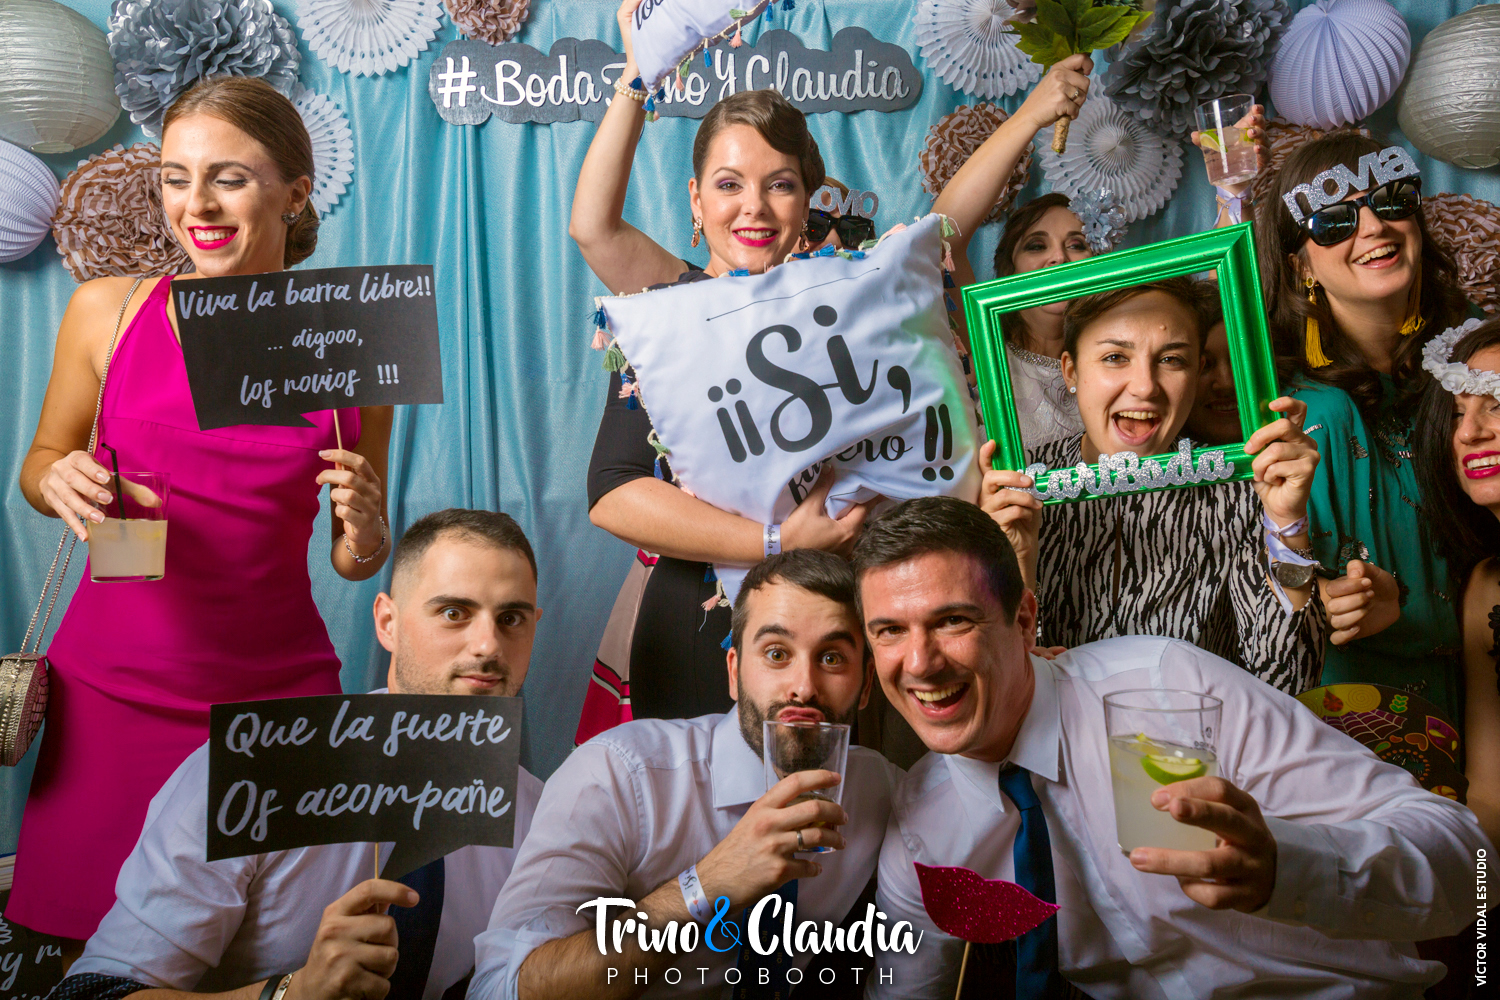 Photobooth Trino y Claudia